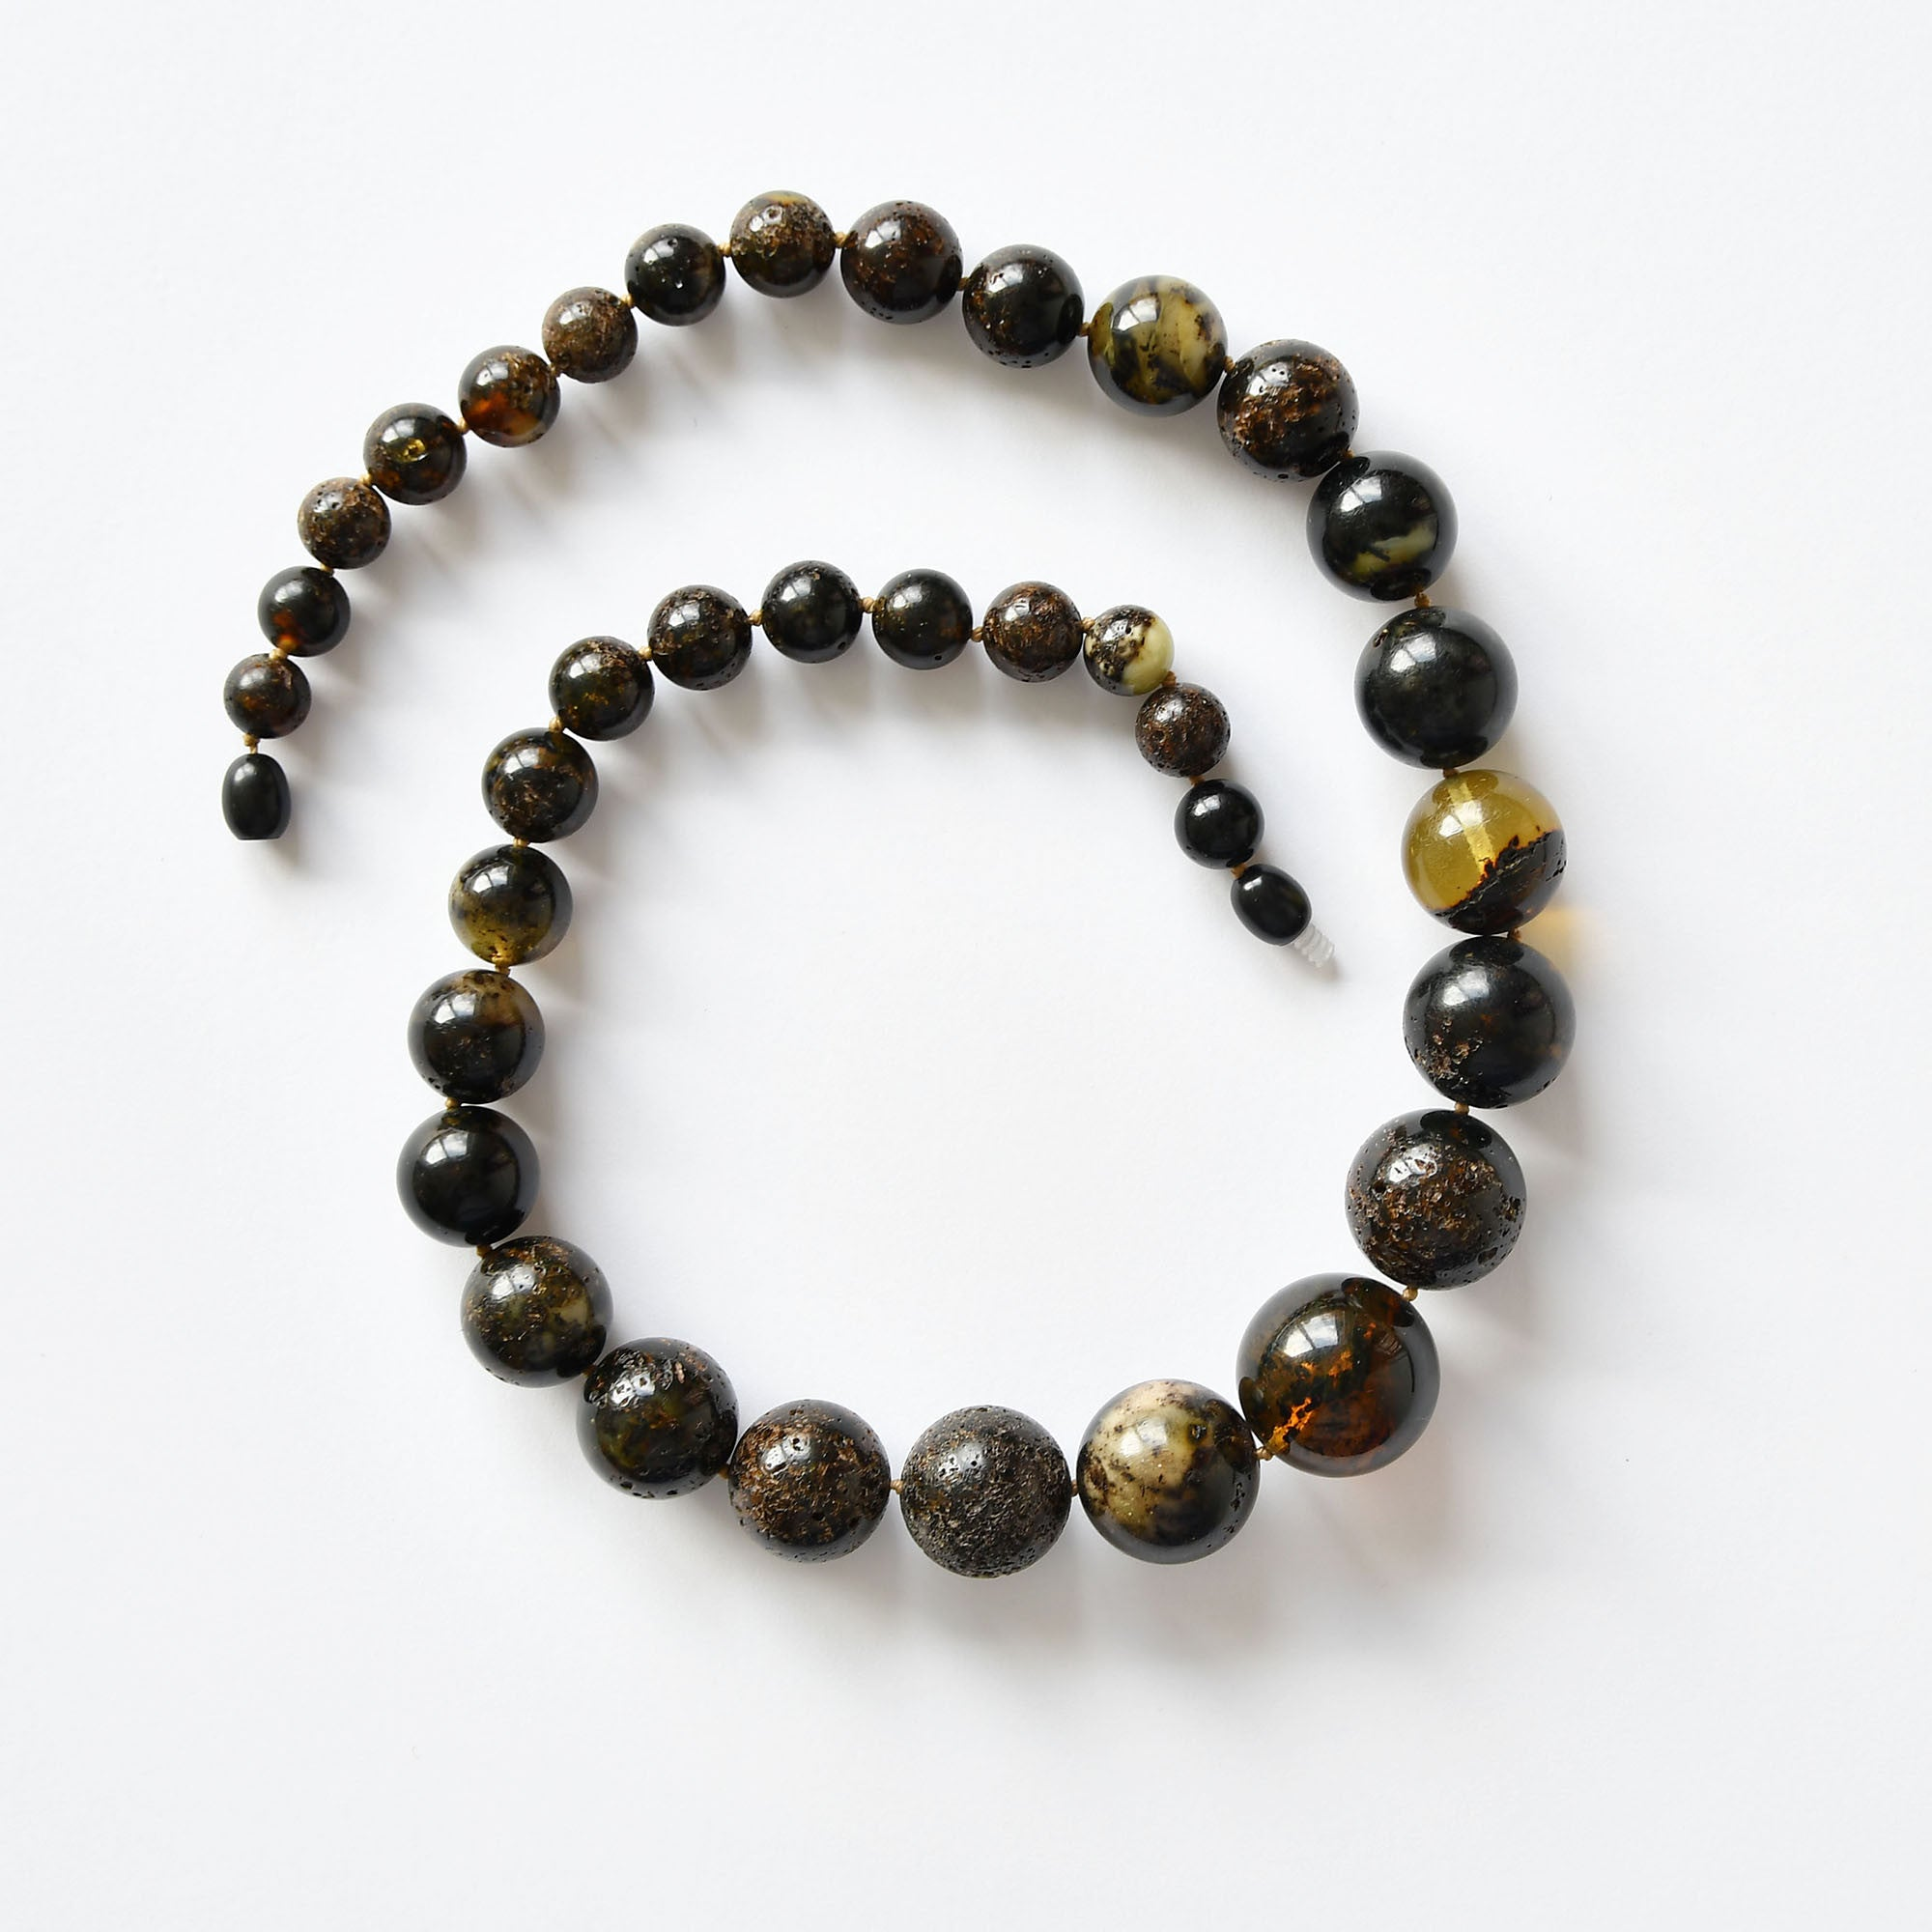 Beads of perfectly round black black amber balls